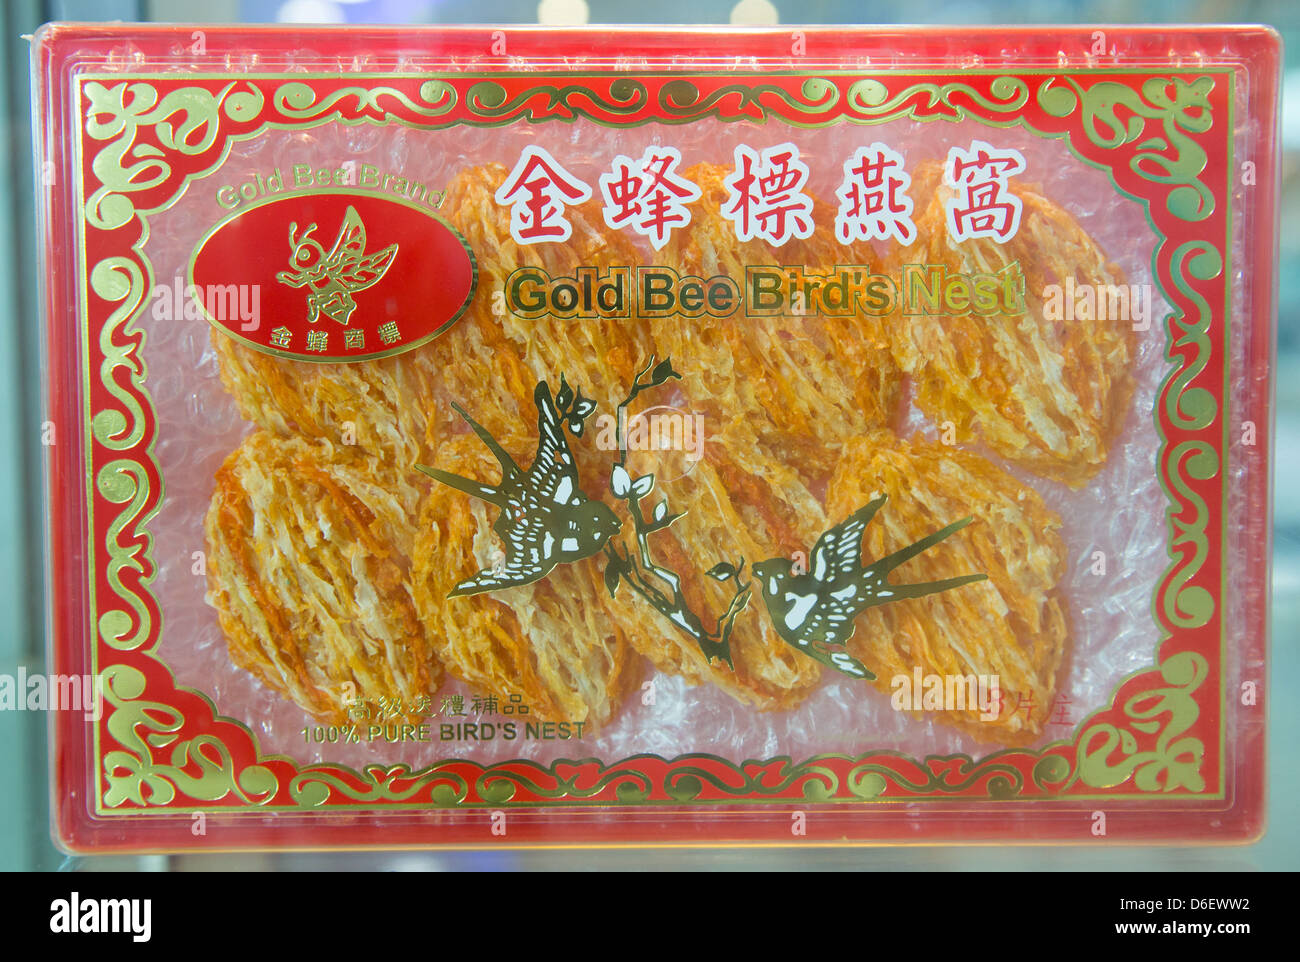 Bird's nests used to make soup packed and marketed as Gold Bee Bird's Nest in a Chinese food store in Borneo - Stock Image